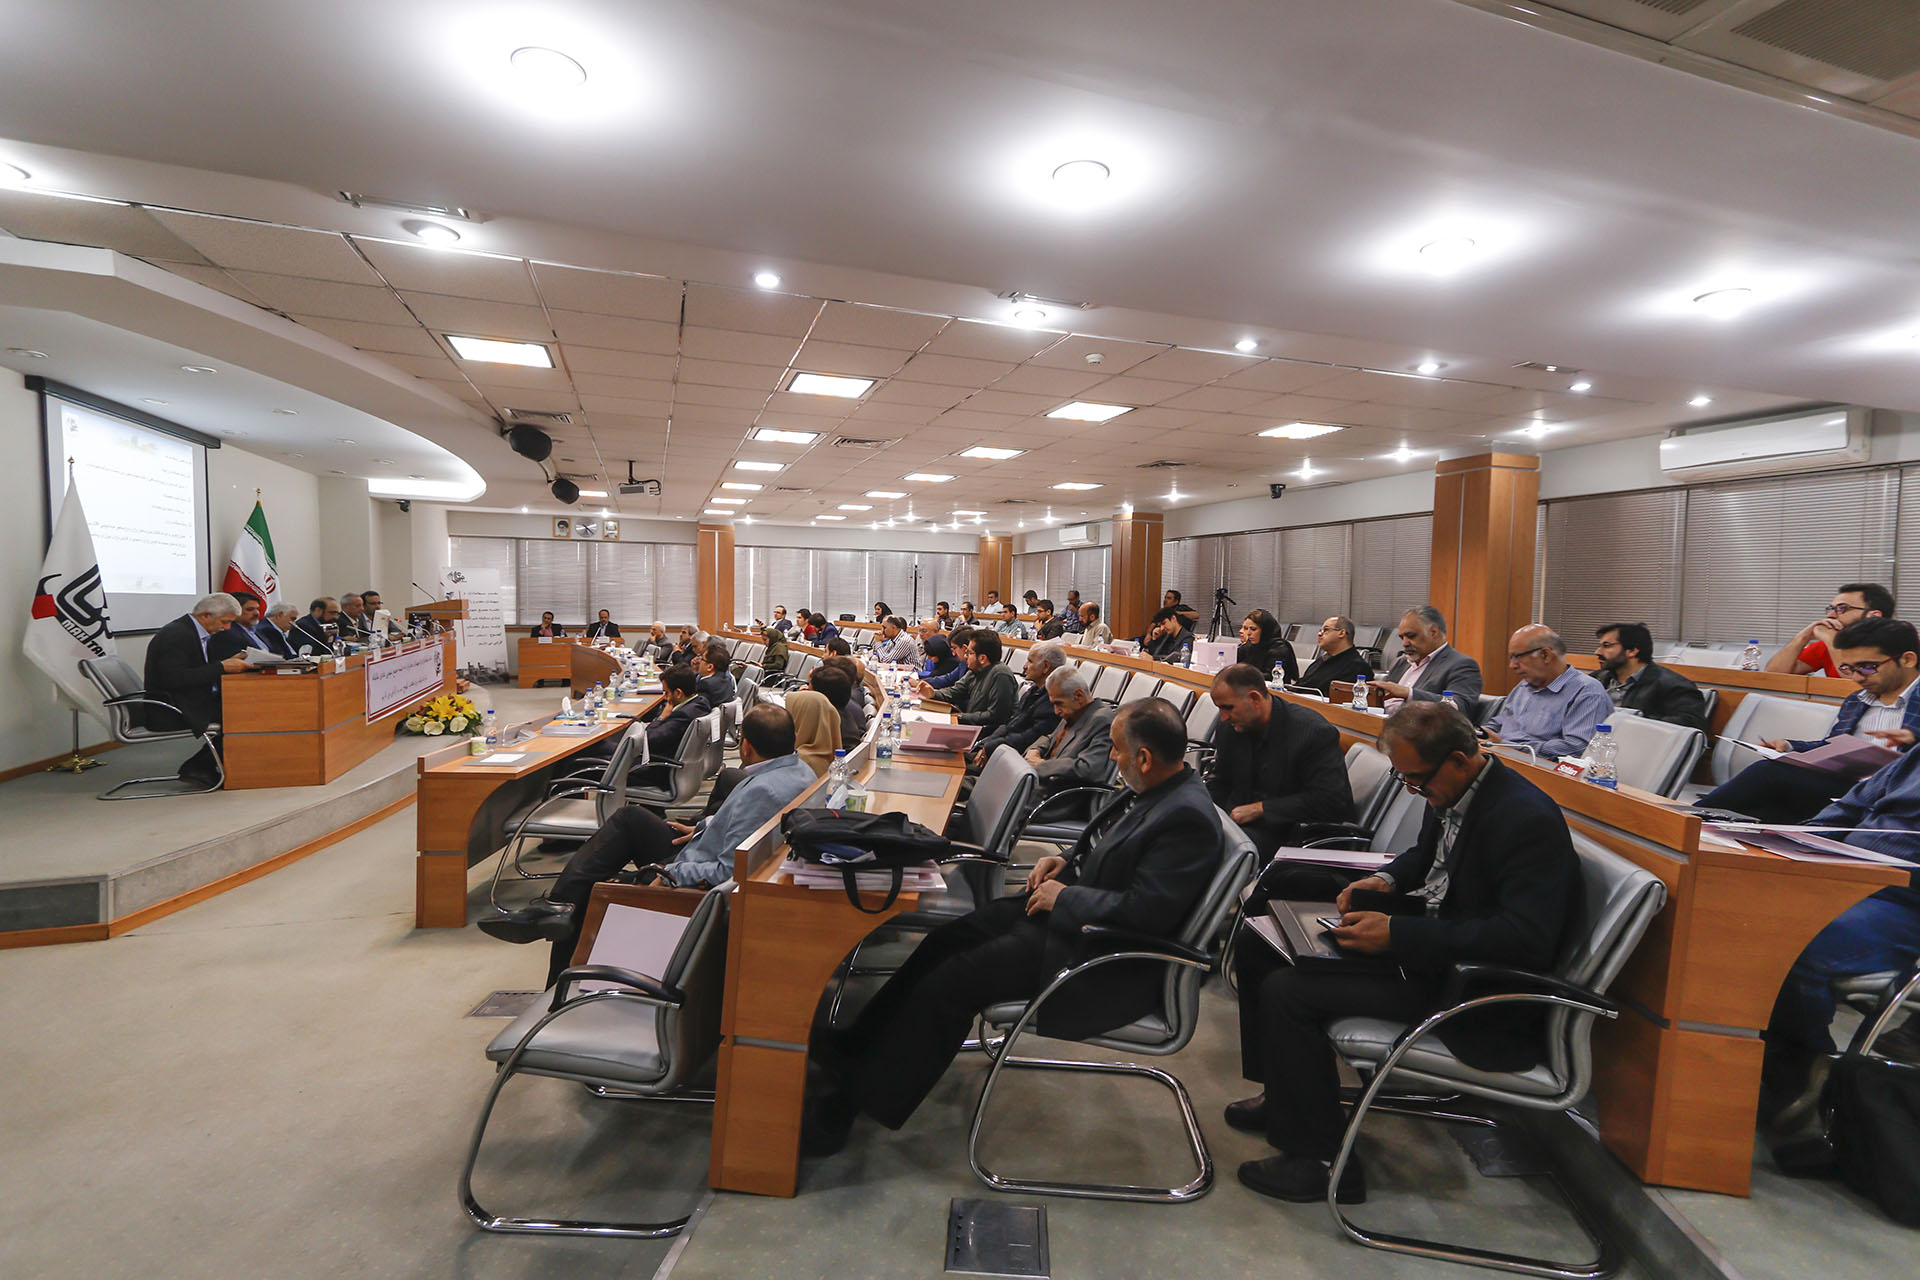 Annual General Assembly Meeting of Mah Taab Kahnouj Company was Held